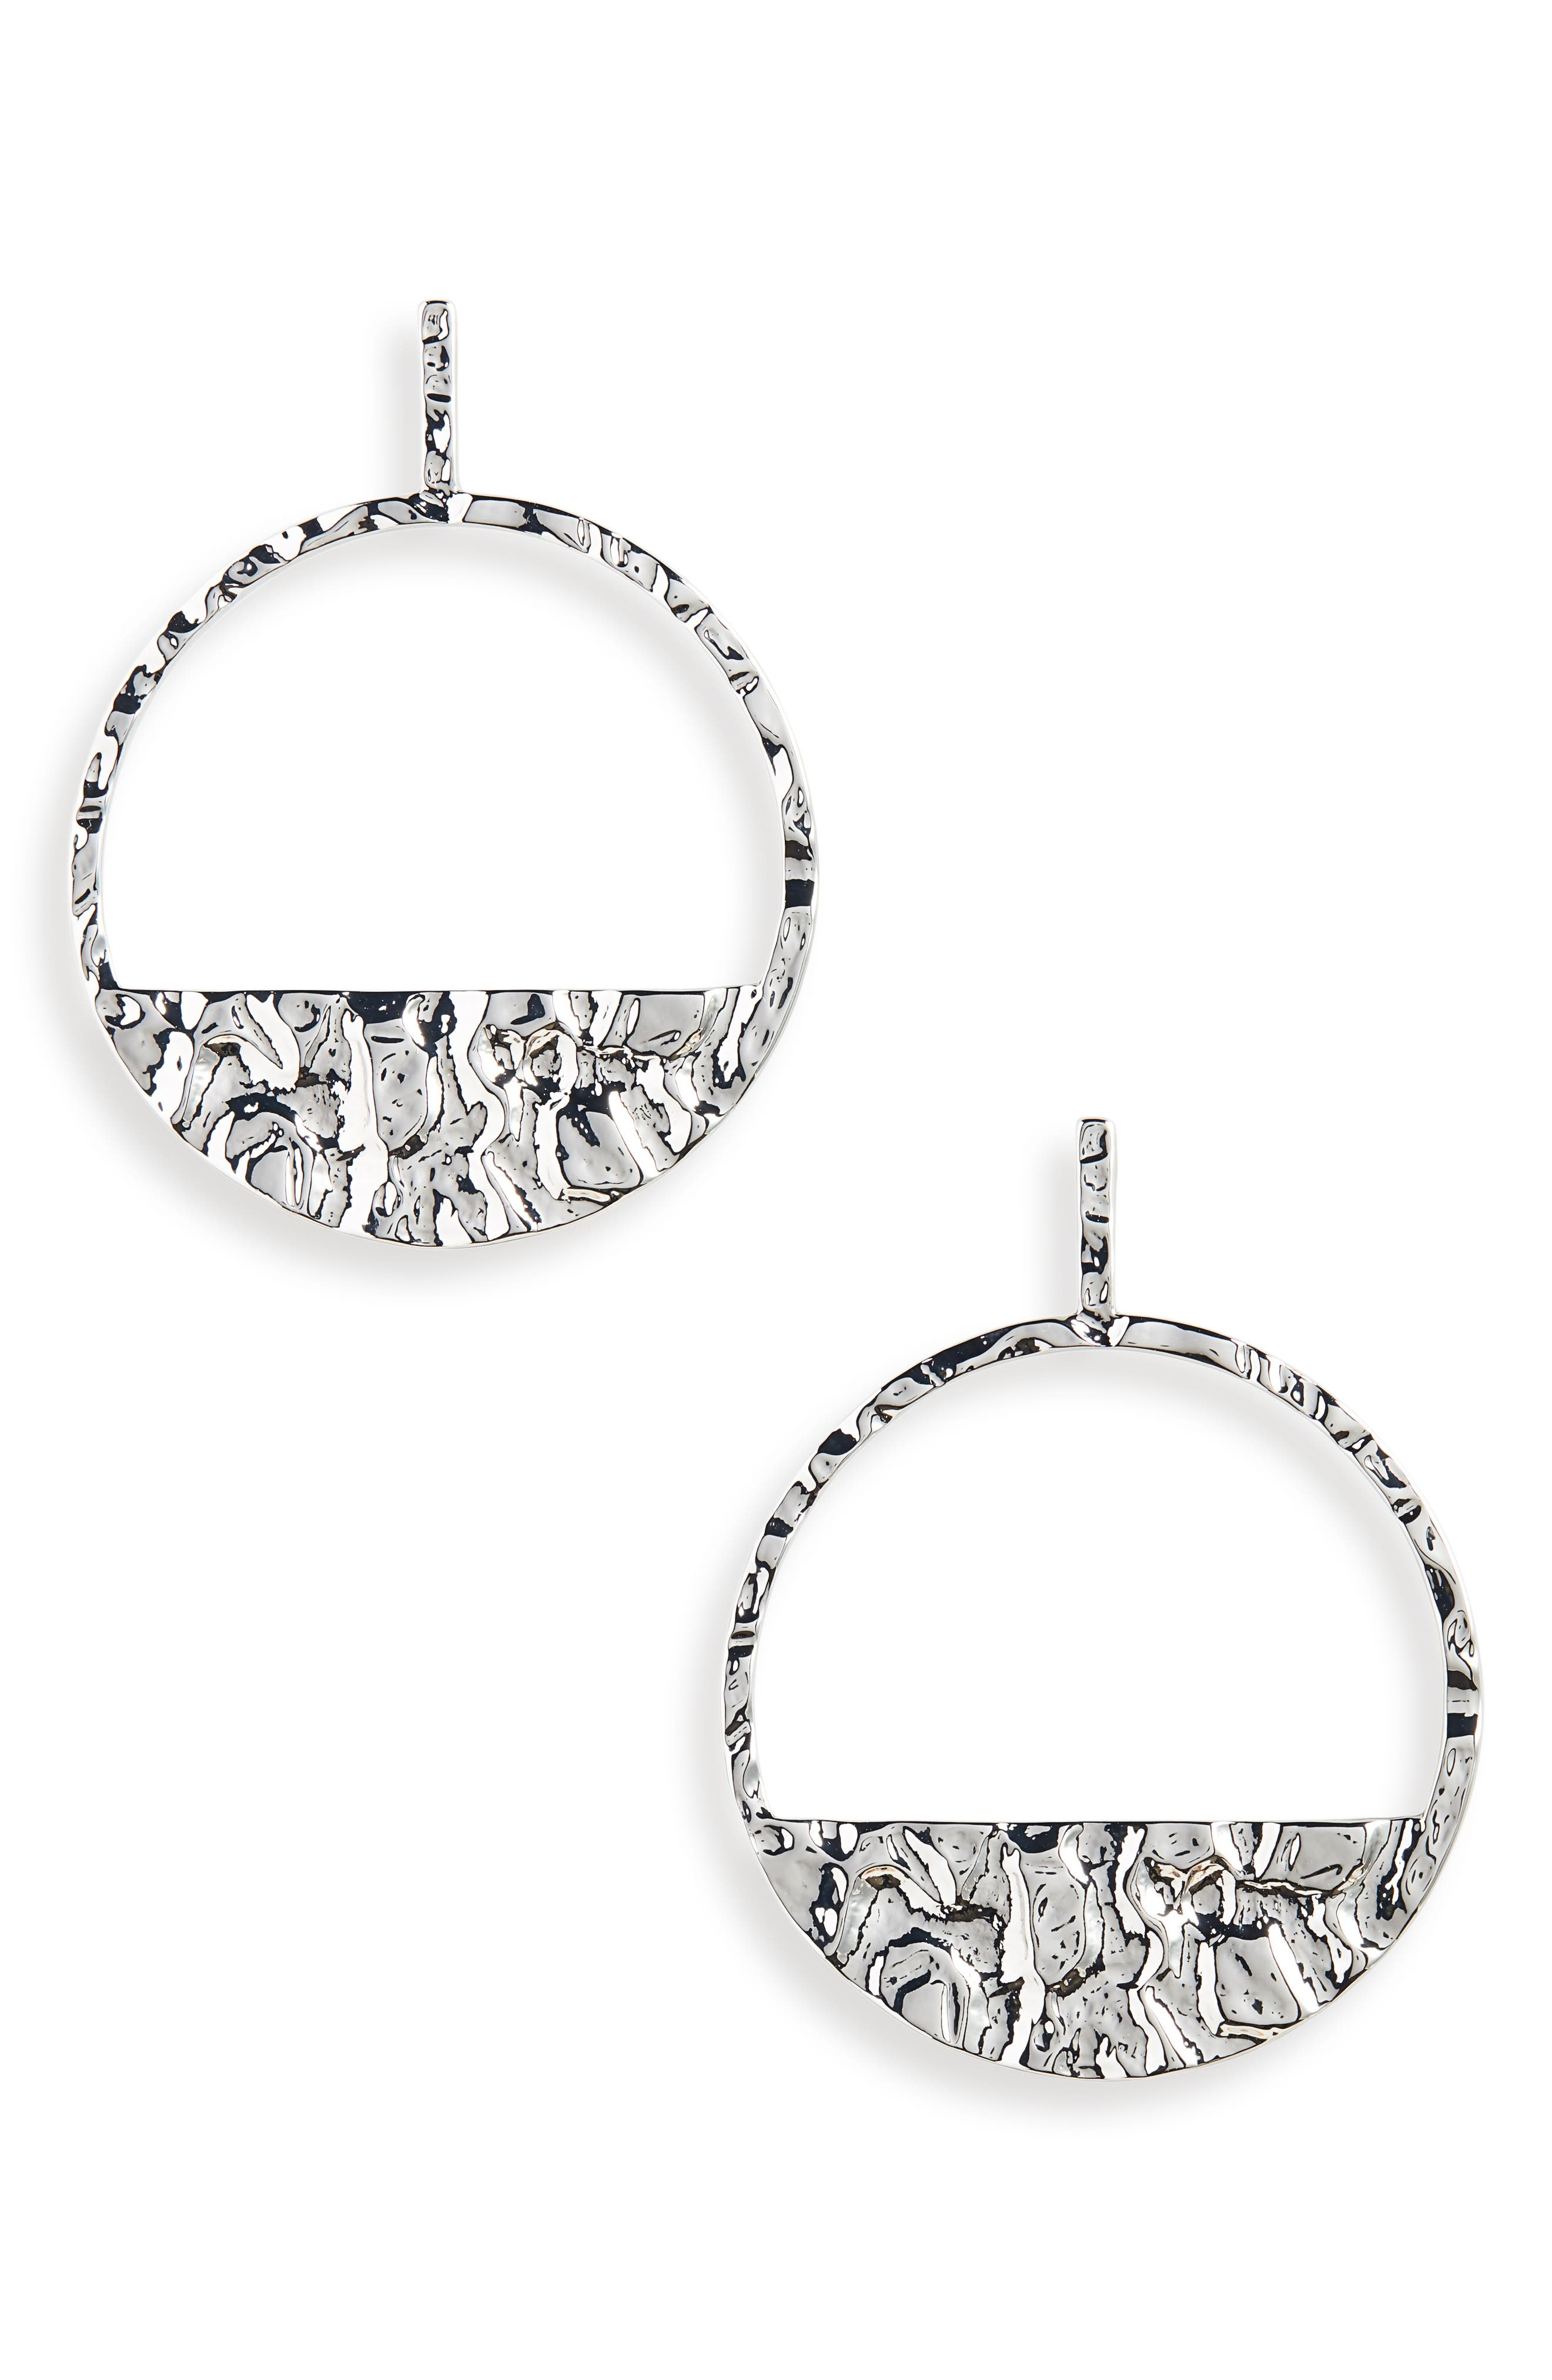 Molten Statement Hoop Earrings,                             Main thumbnail 1, color,                             SILVER